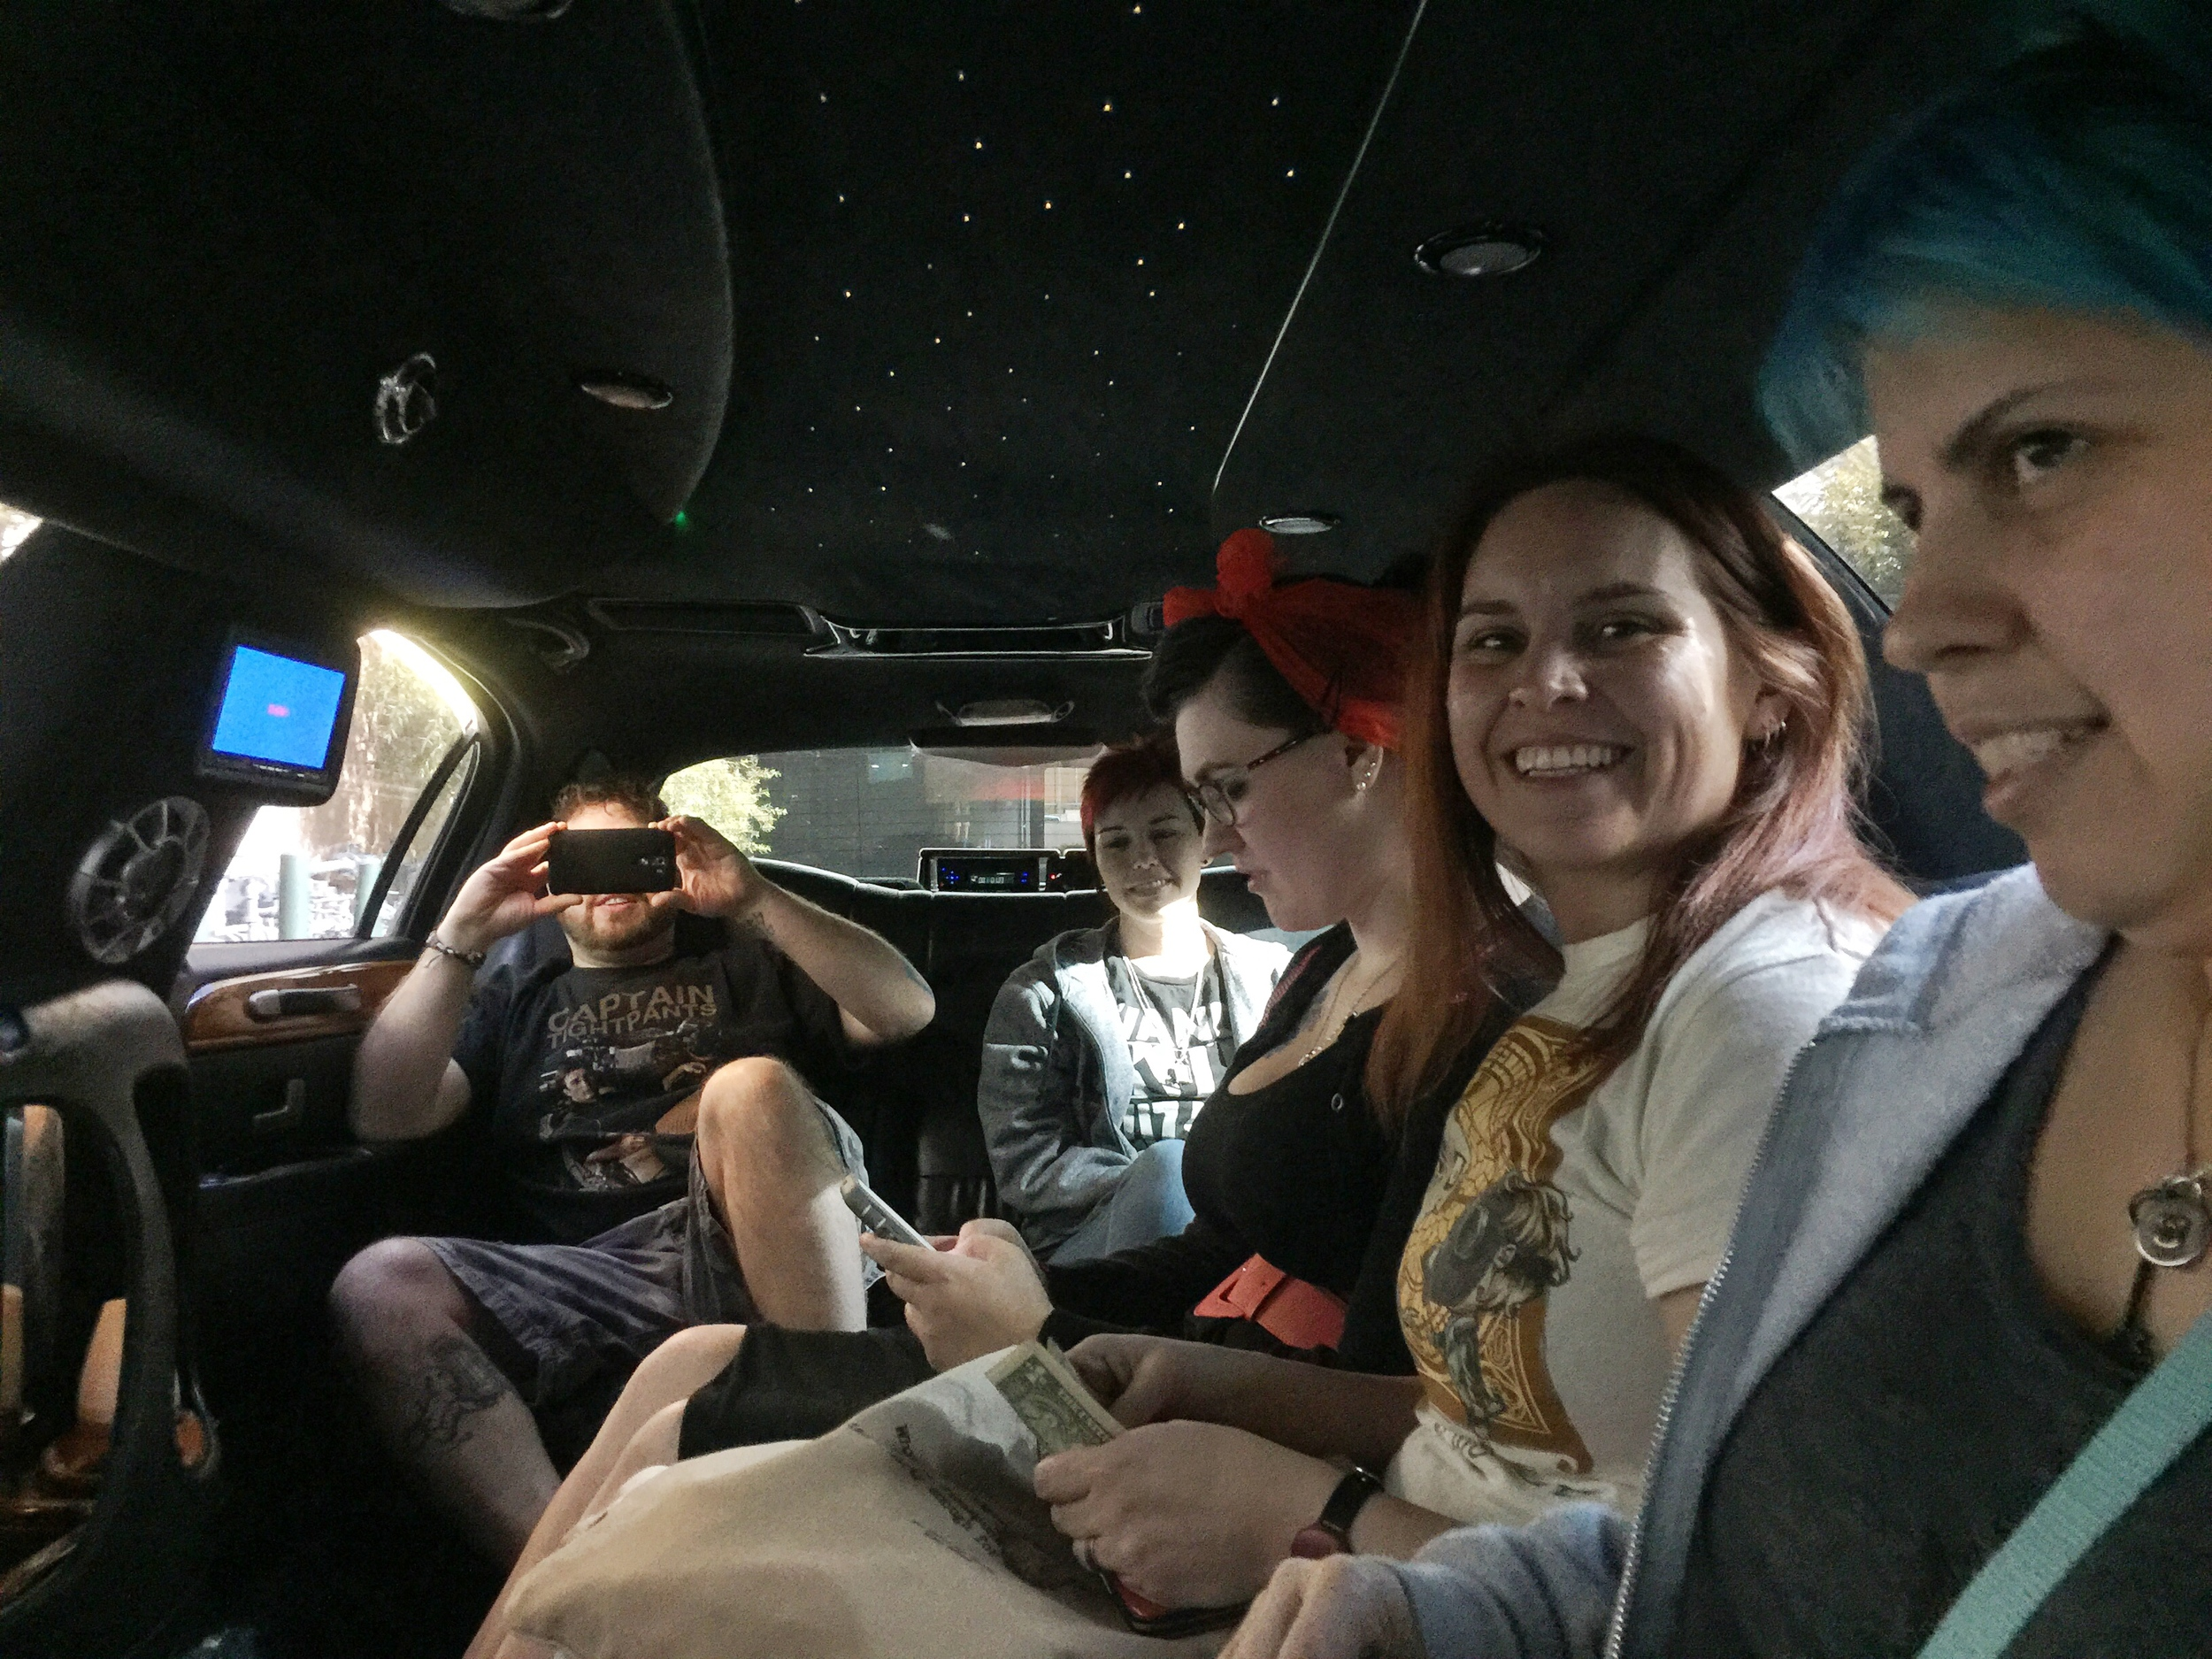 Cruising in style to the Las Vegas EAT restaurant.  Left to right: Voodoo Charlie, Chelly, Kayse, Kelly, Stella